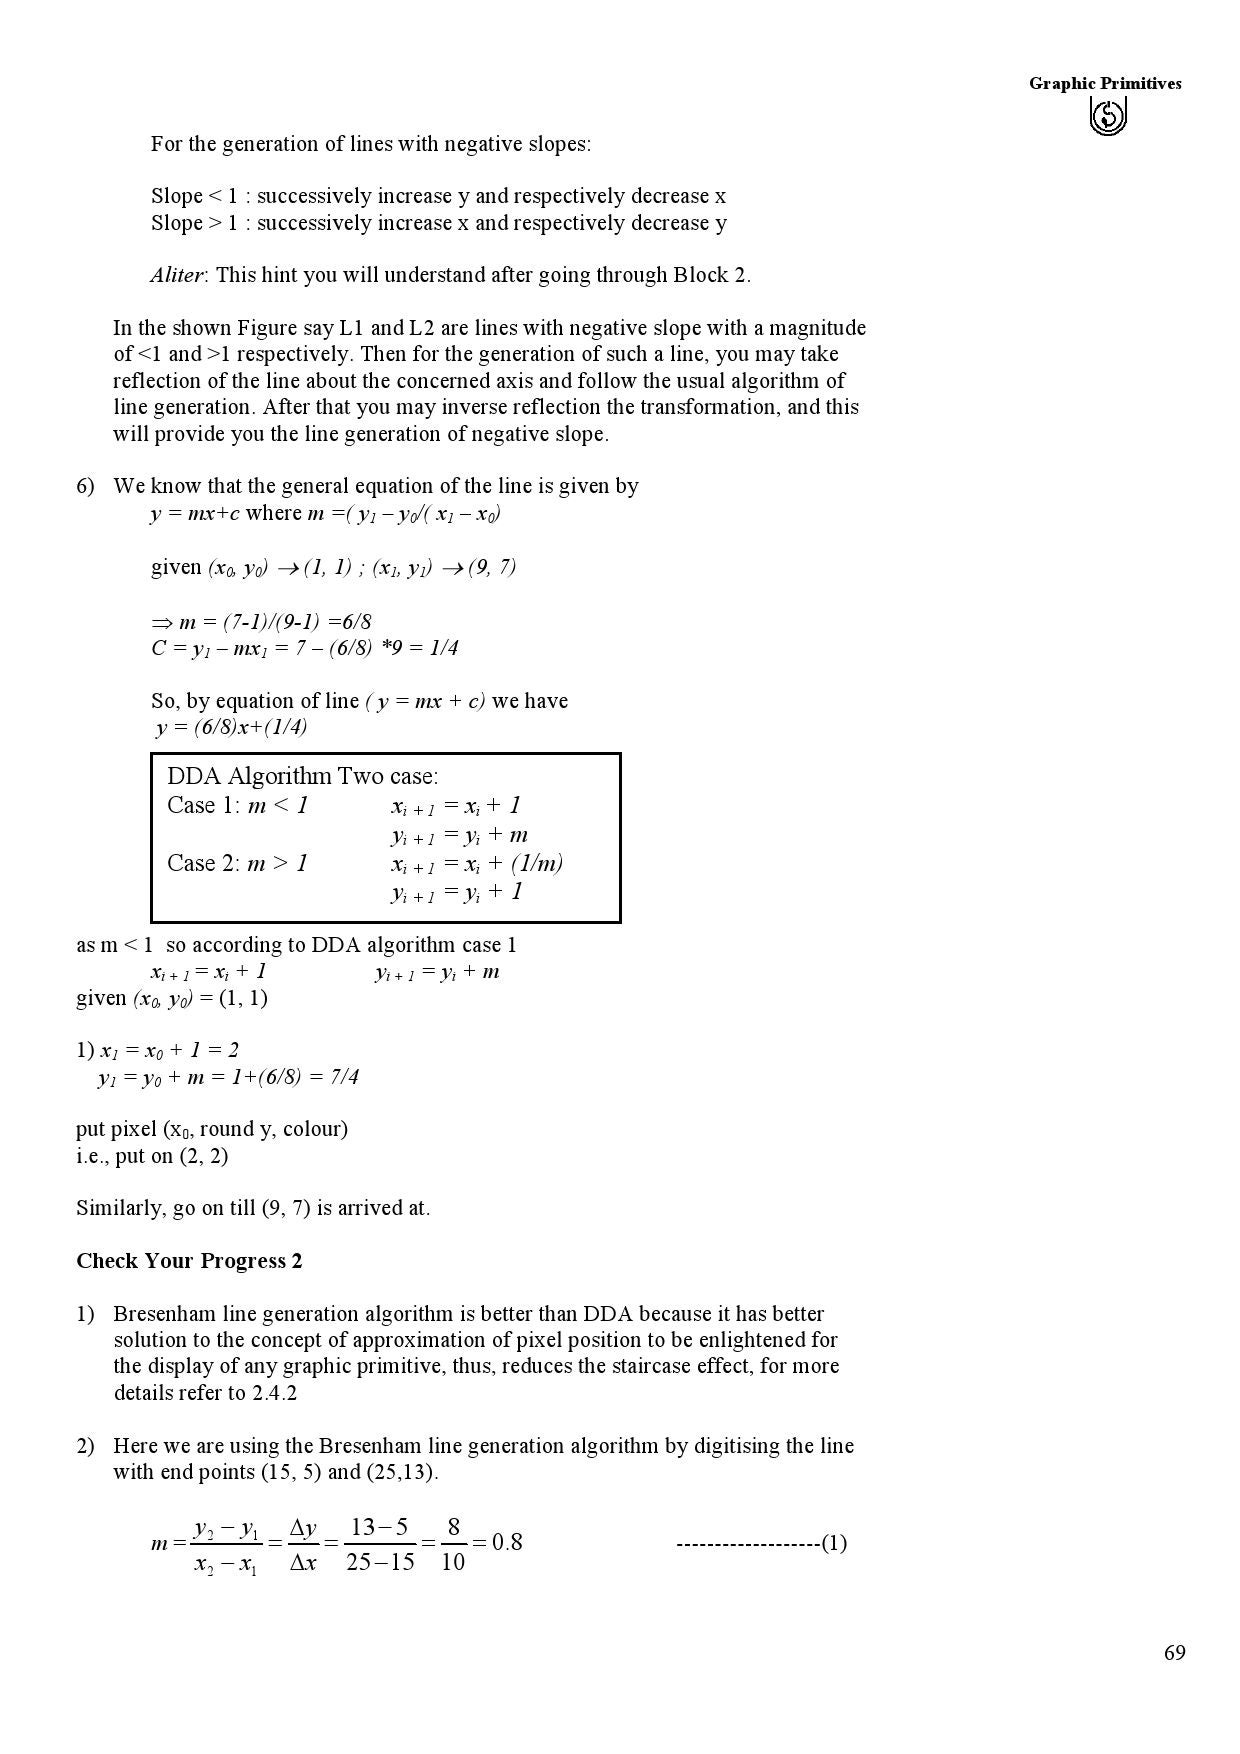 Dda Line Drawing Algorithm For Negative Slope : Mcs ignou study material by mca issuu